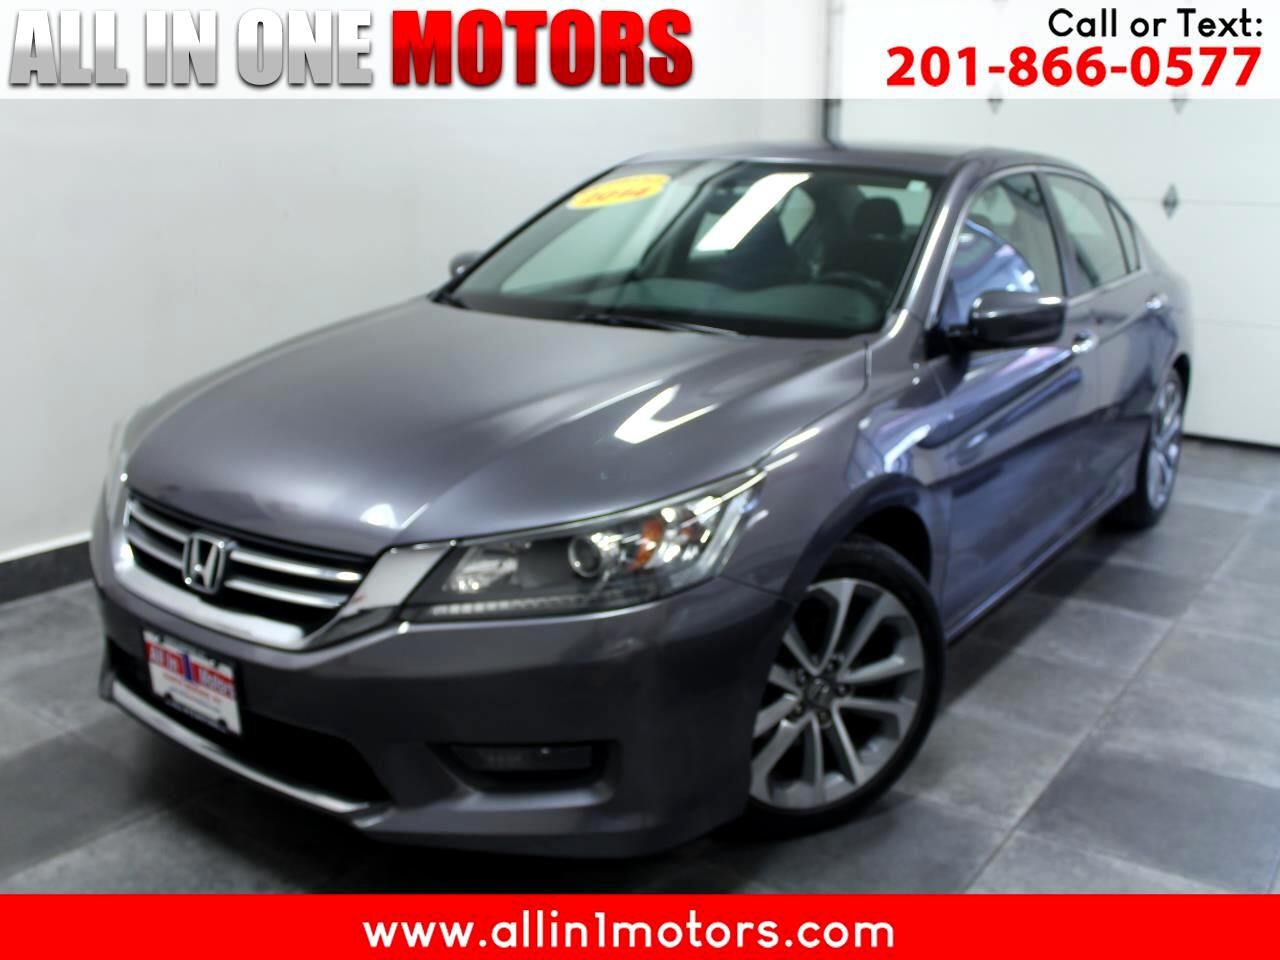 Honda Accord Sedan 4dr I4 Man Sport 2014